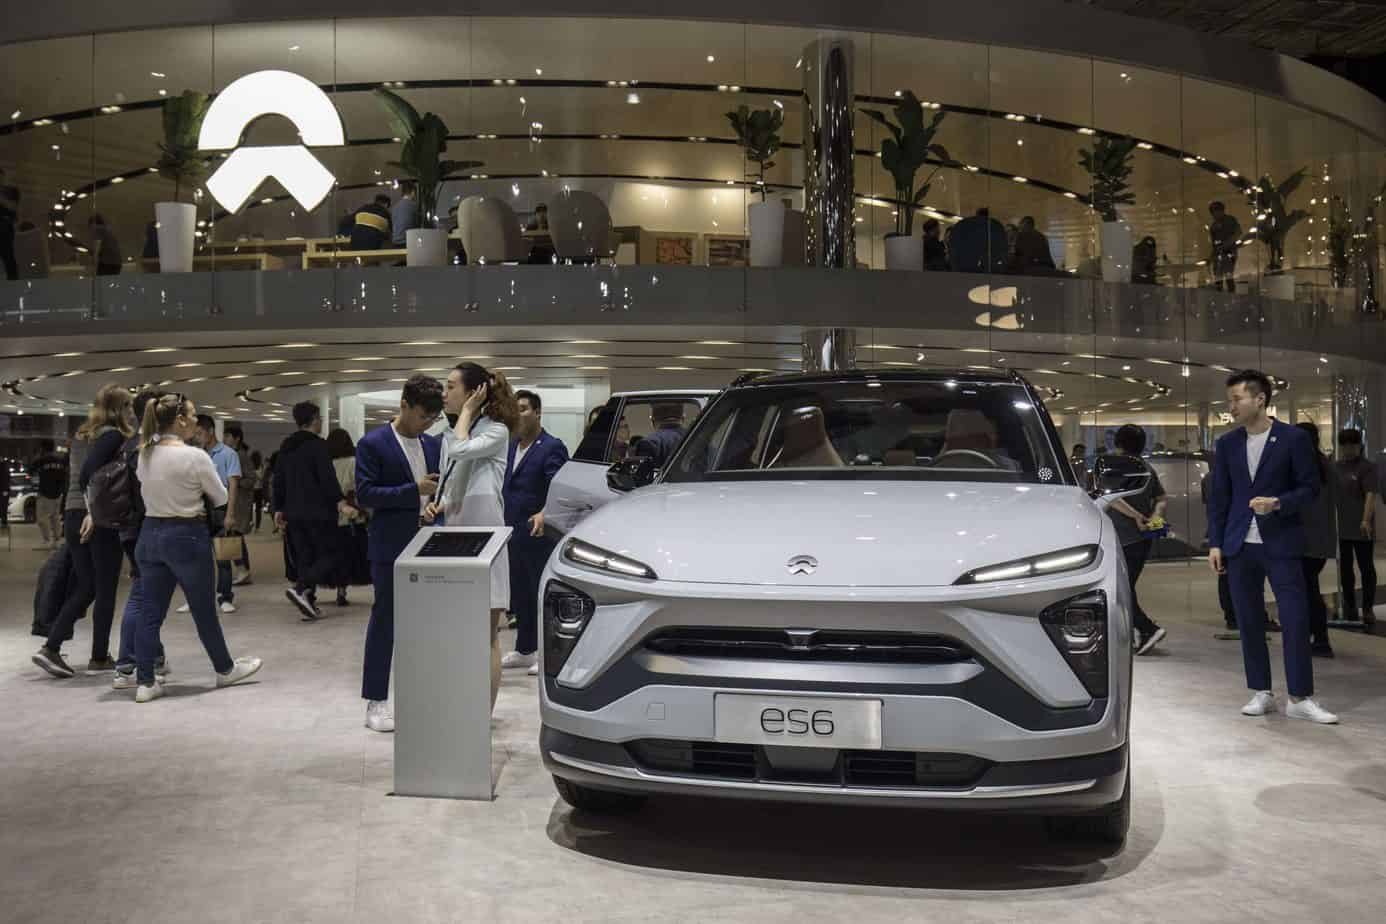 Tesla's Chinese rival NIO is up 1,200% this year